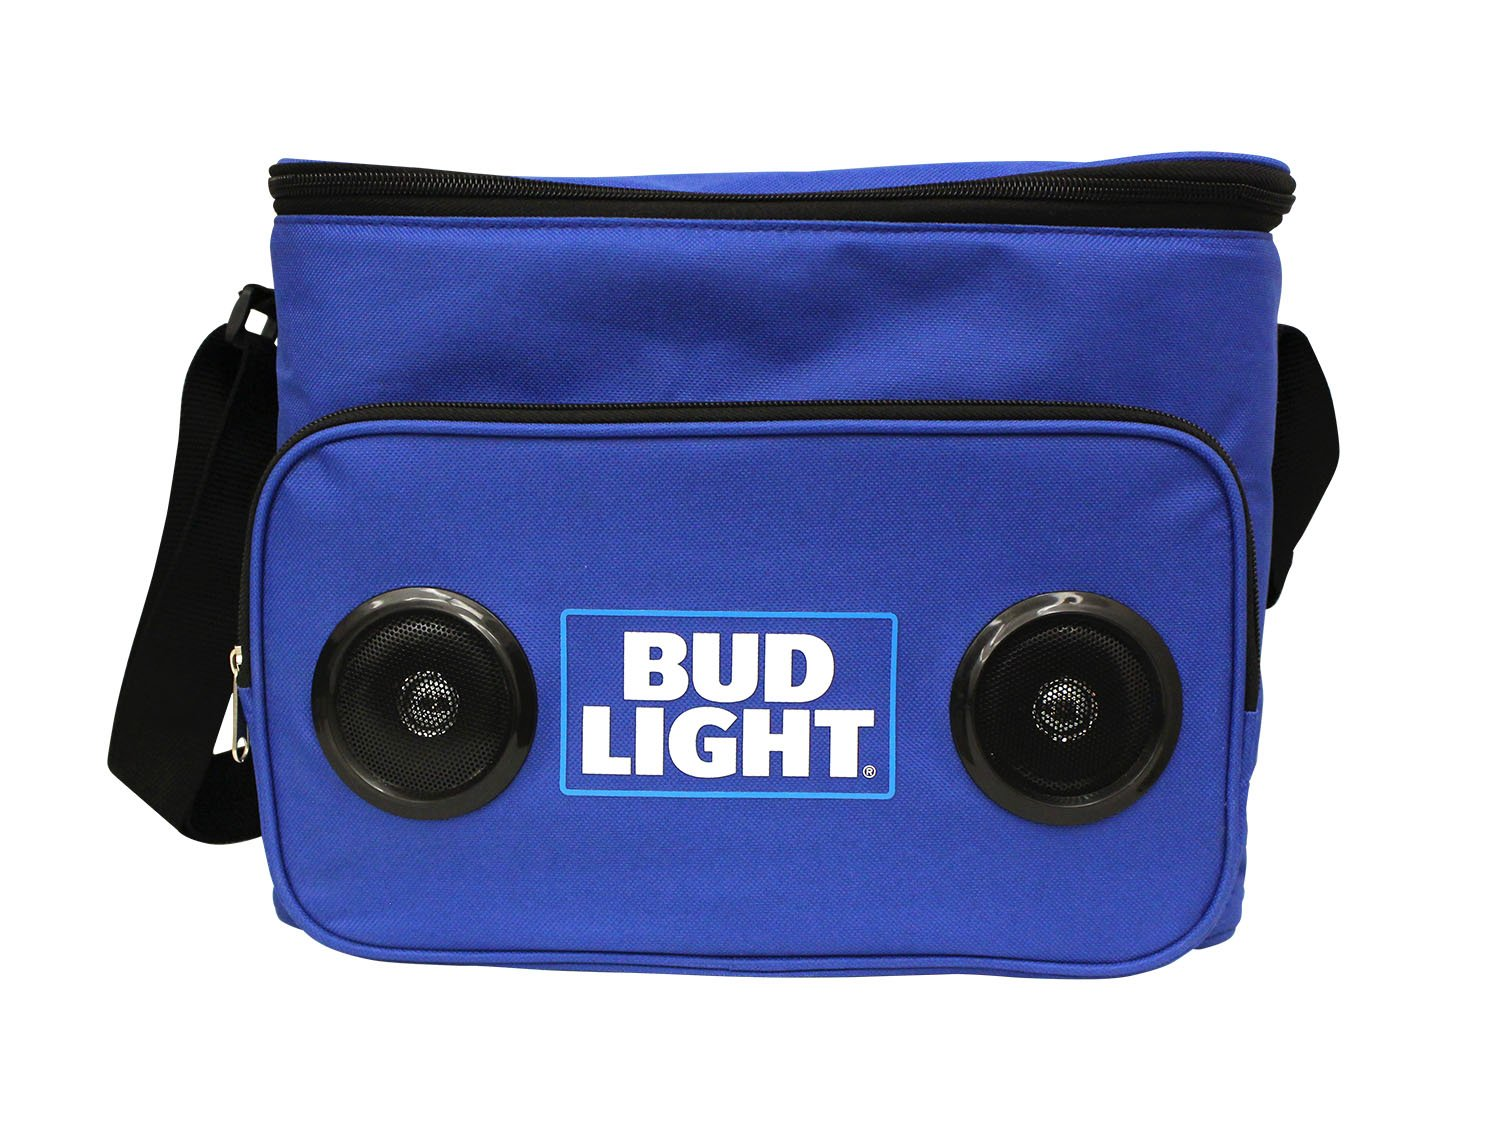 Bud Light Soft Cooler Bluetooth Speaker Portable Travel Cooler with Built in Speakers BudLight Wireless Speaker Cool Ice Pack Cold Beer Stereo for Apple iPhone, Samsung Galaxy by Bud Light (Image #2)